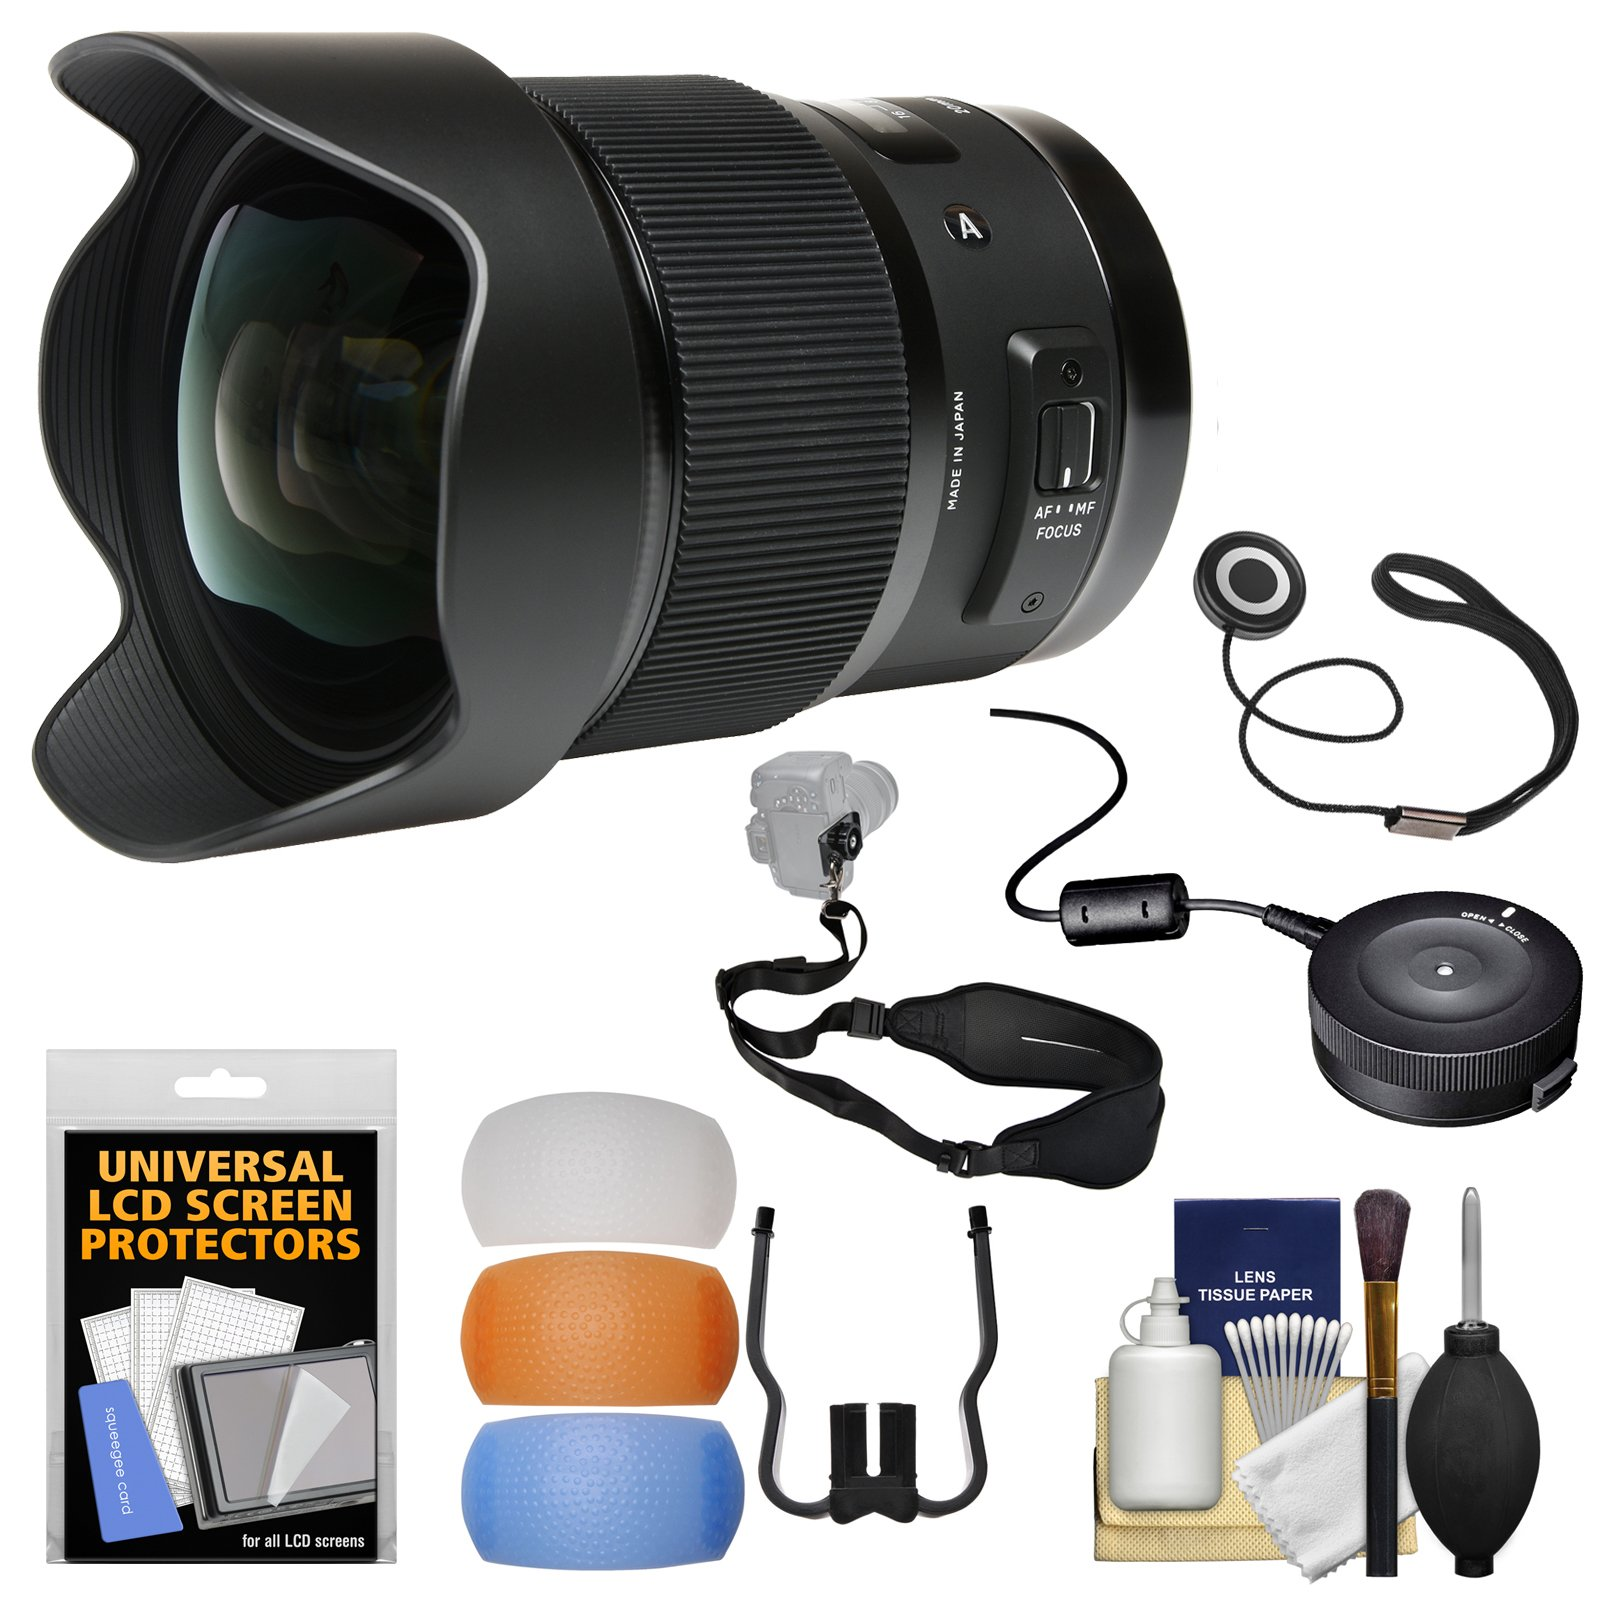 Sigma 20mm f/1.4 Art DG HSM Lens with USB Dock + Sling Strap + Diffusers + Kit for Canon EOS Digital SLR Cameras